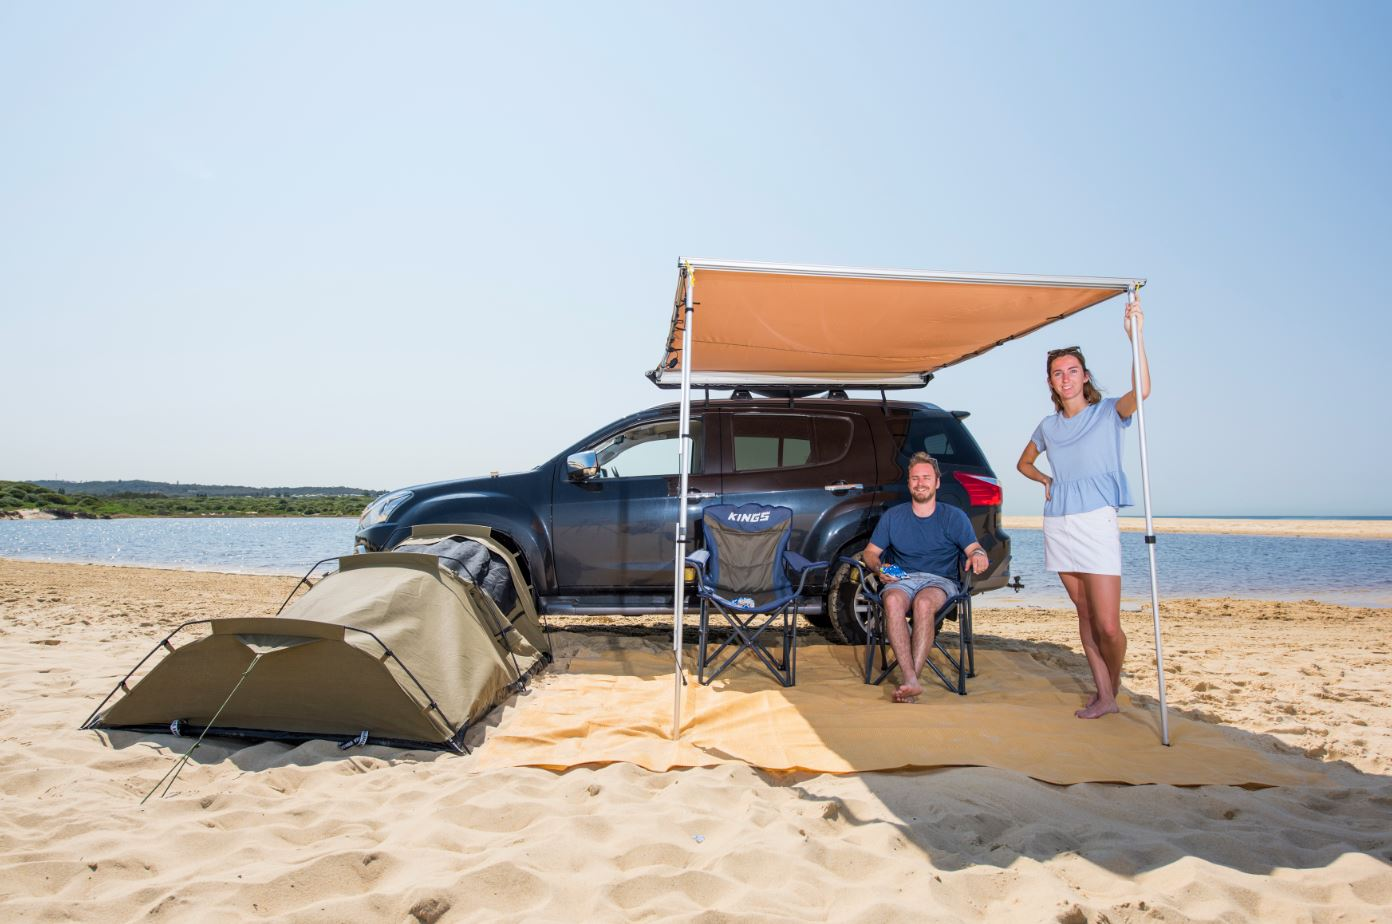 The Universal campsite setup - yours for under $700! - image Capture-152 on https://www.4wdsupacentre.com.au/news